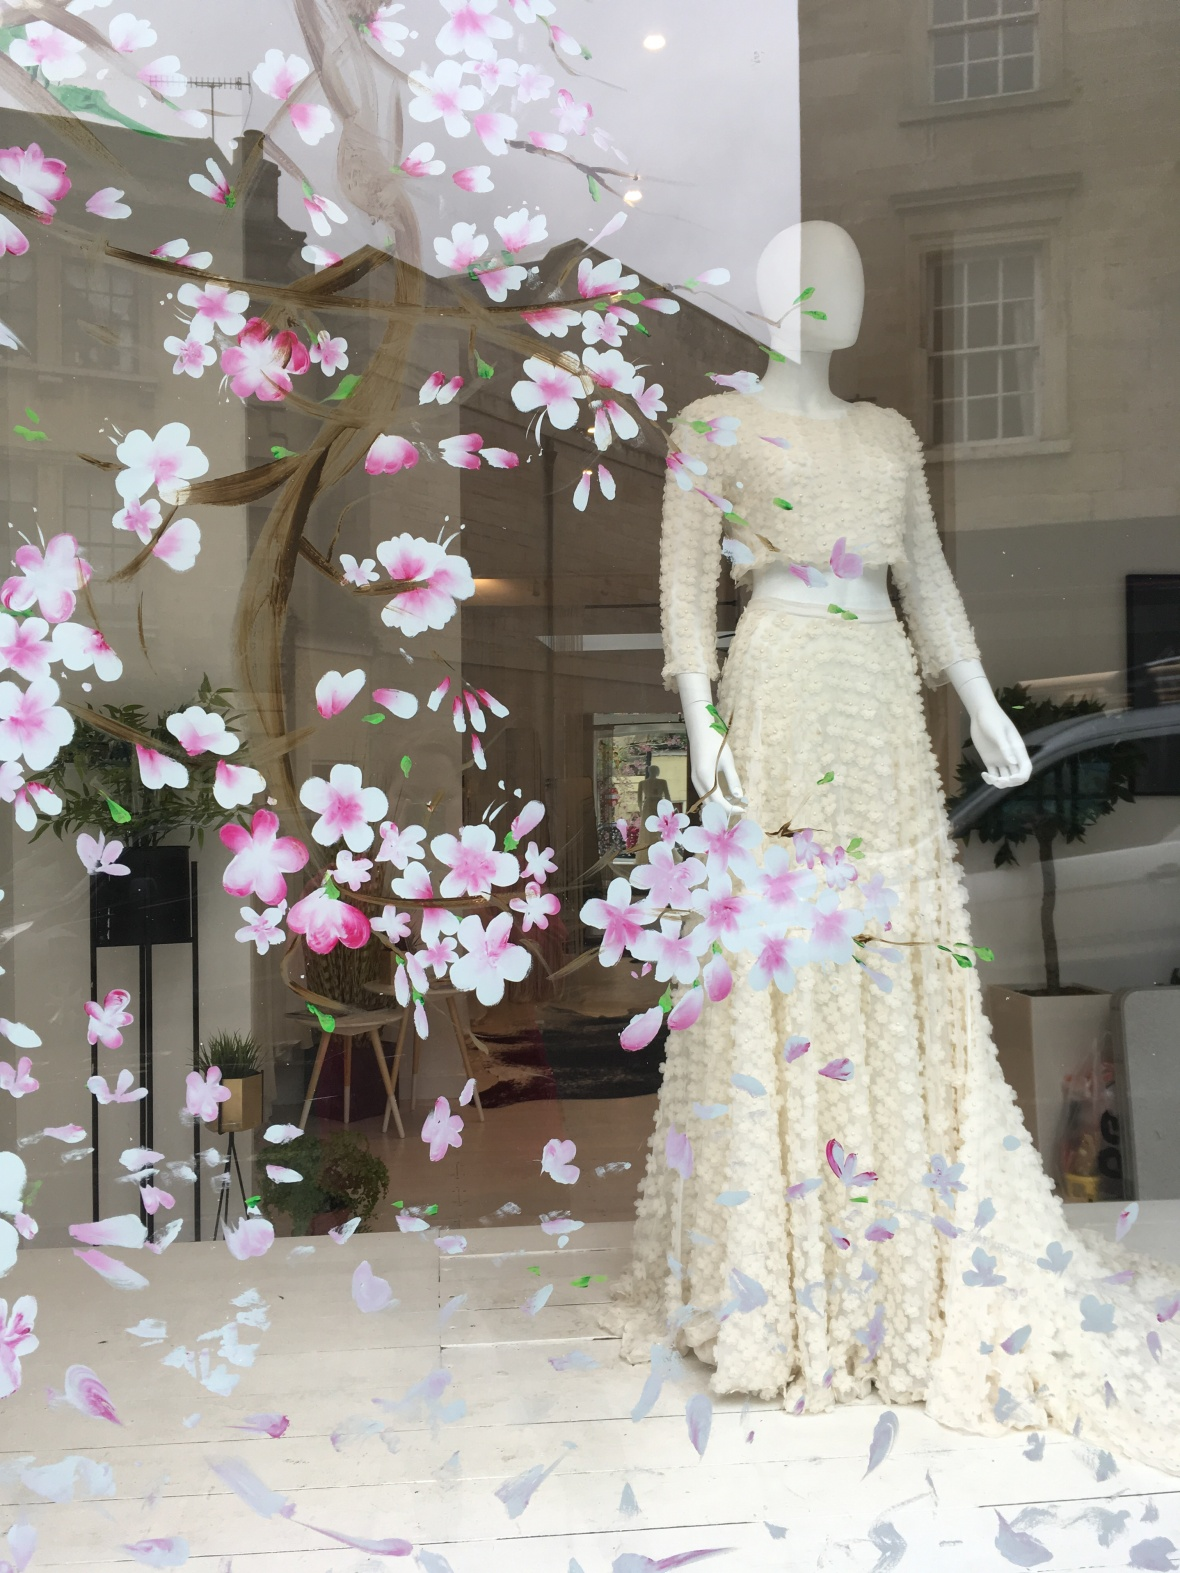 Hand Painted Cherry Blossom Bridal Shop Window Display for Flossy & Willow, Bradford-on-Avon near Bath.